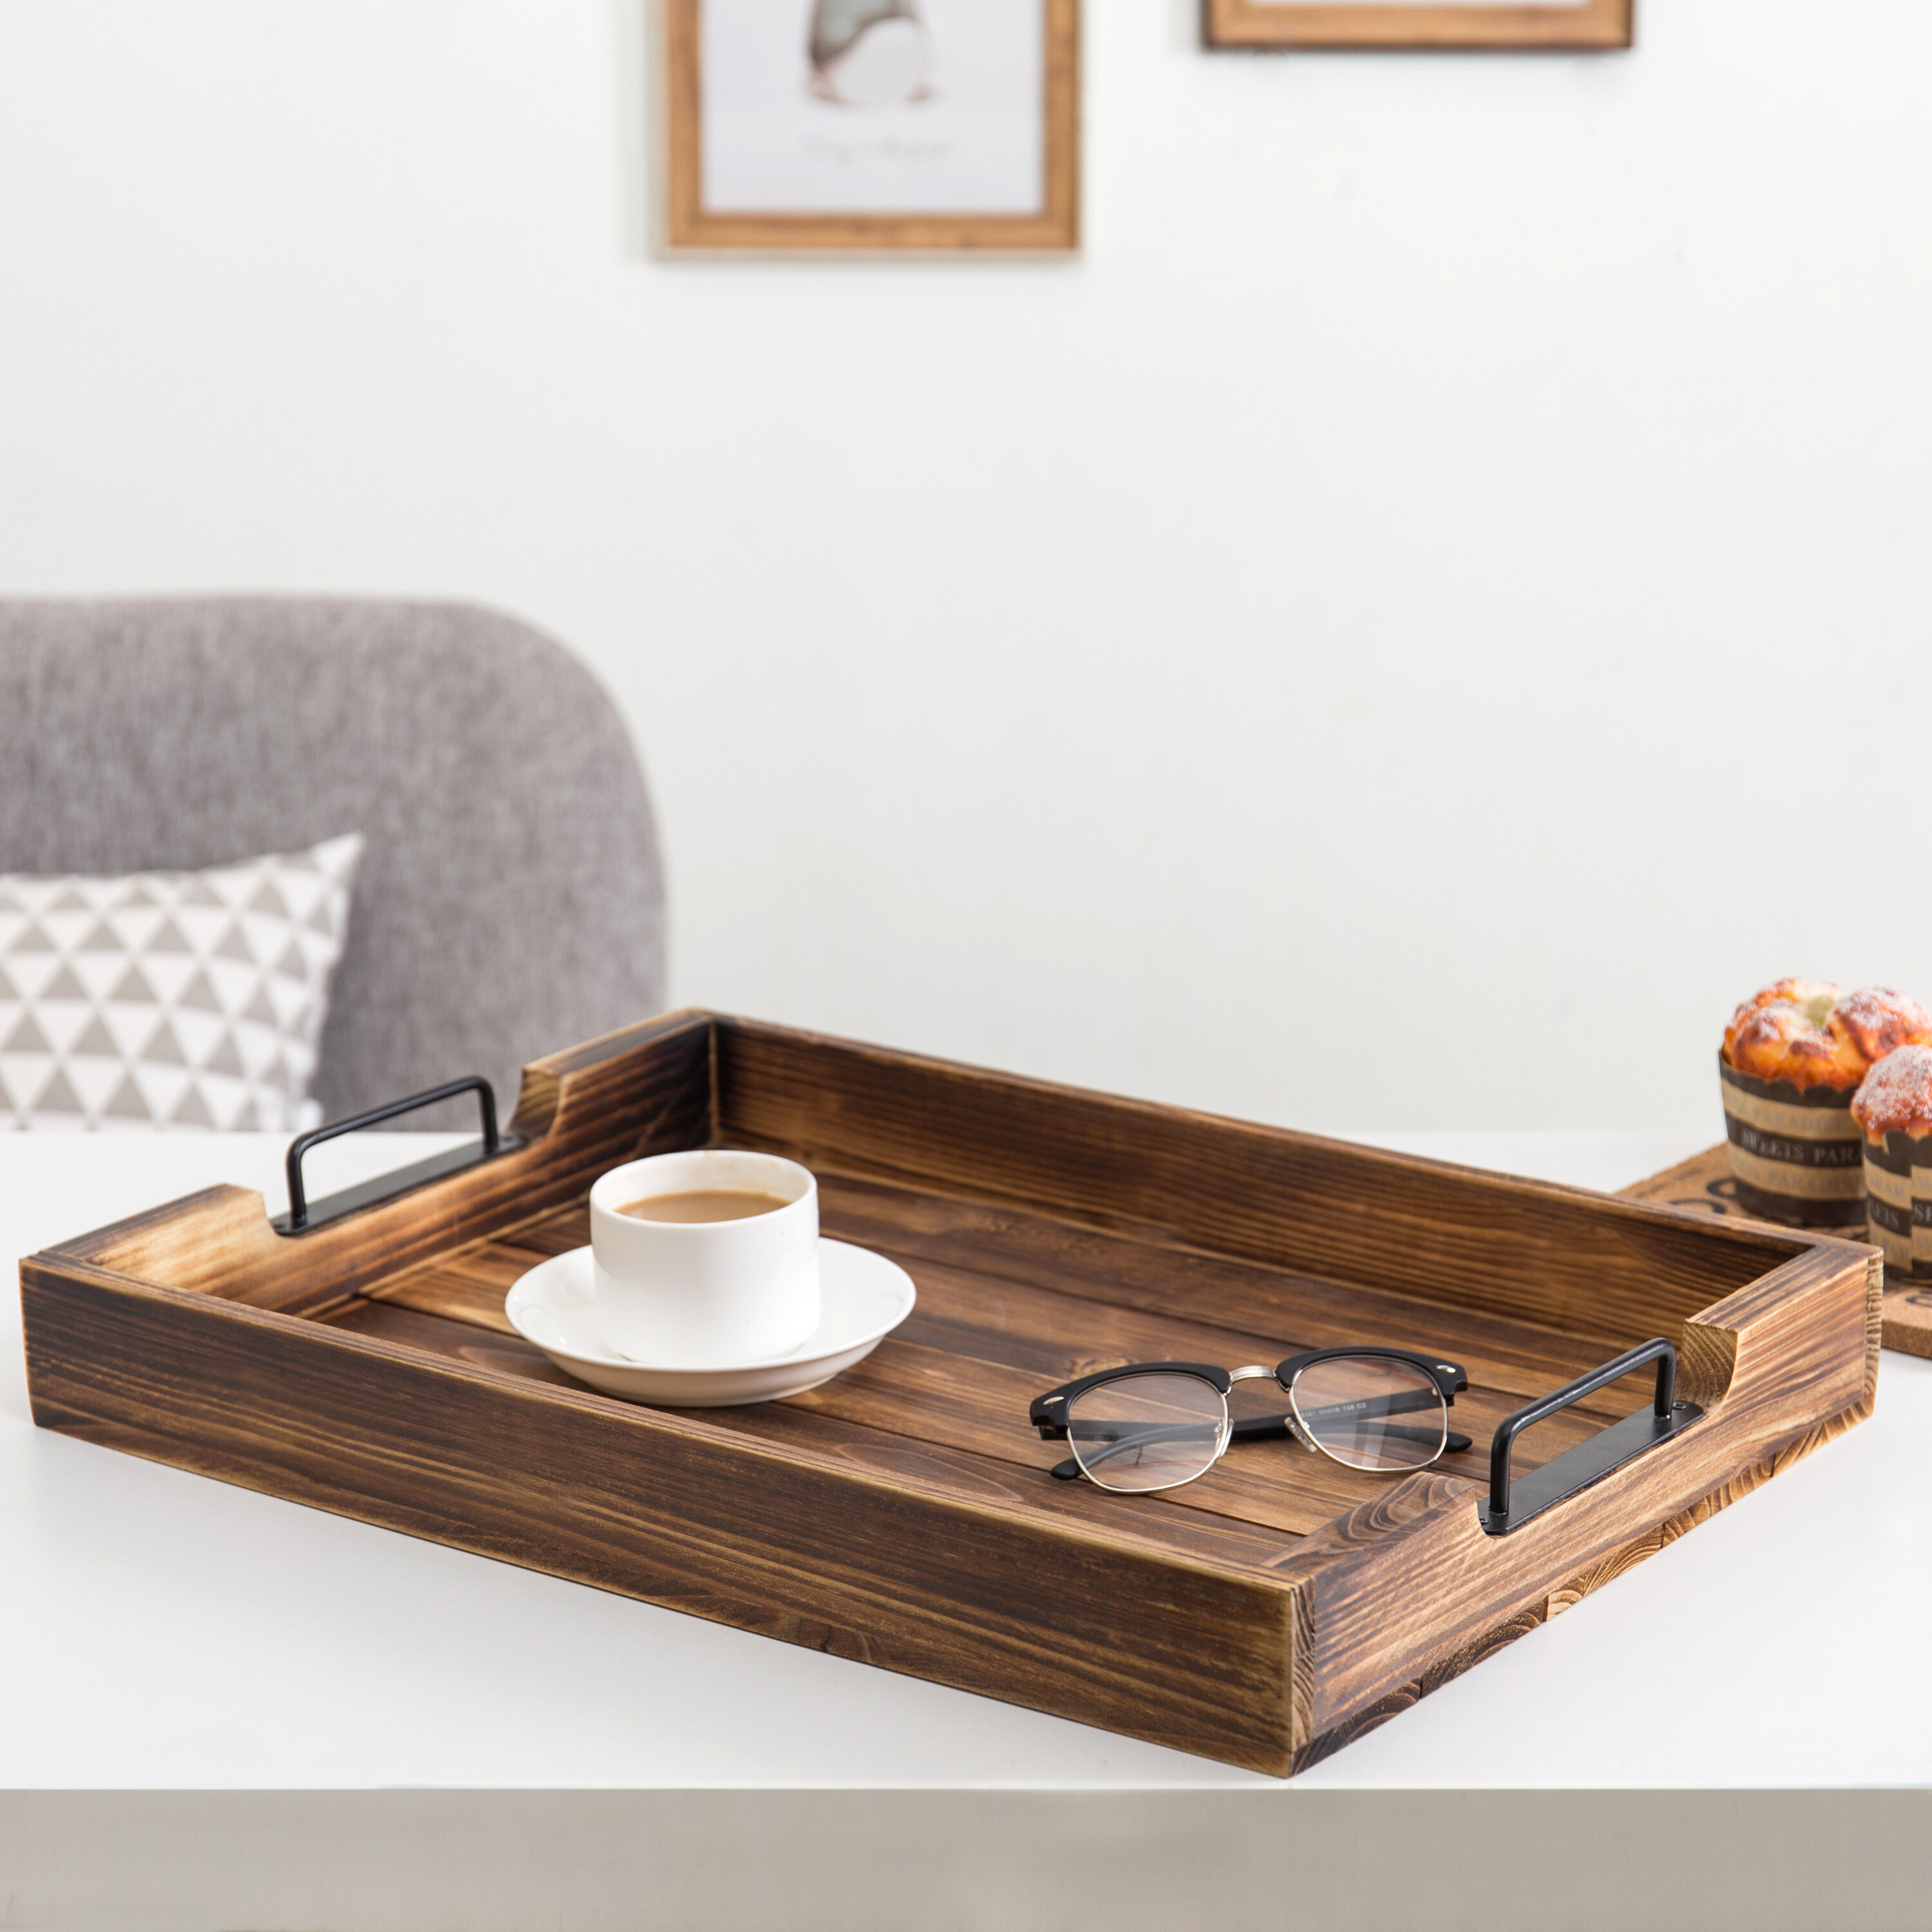 Wayfair Extra Large Decorative Trays You Ll Love In 2021